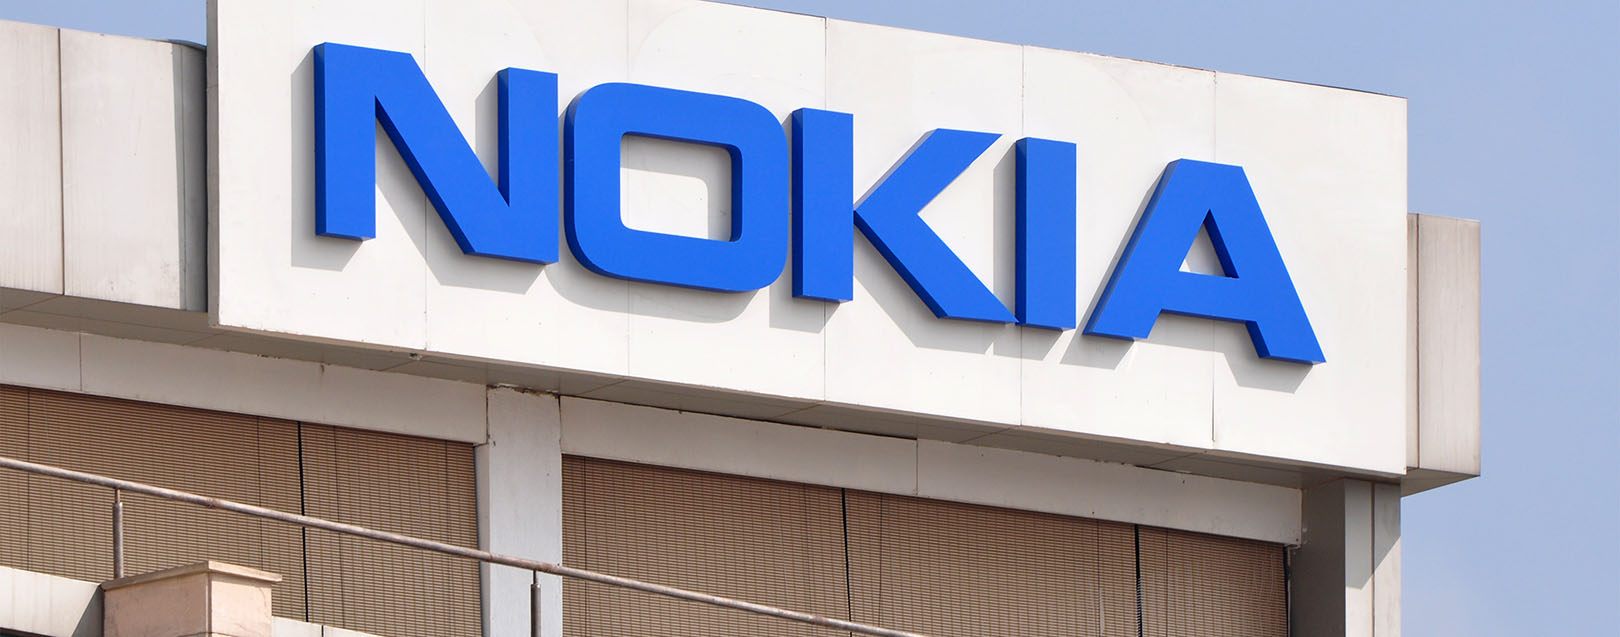 Nokia in talks with Indian telecom firms on 5G trials